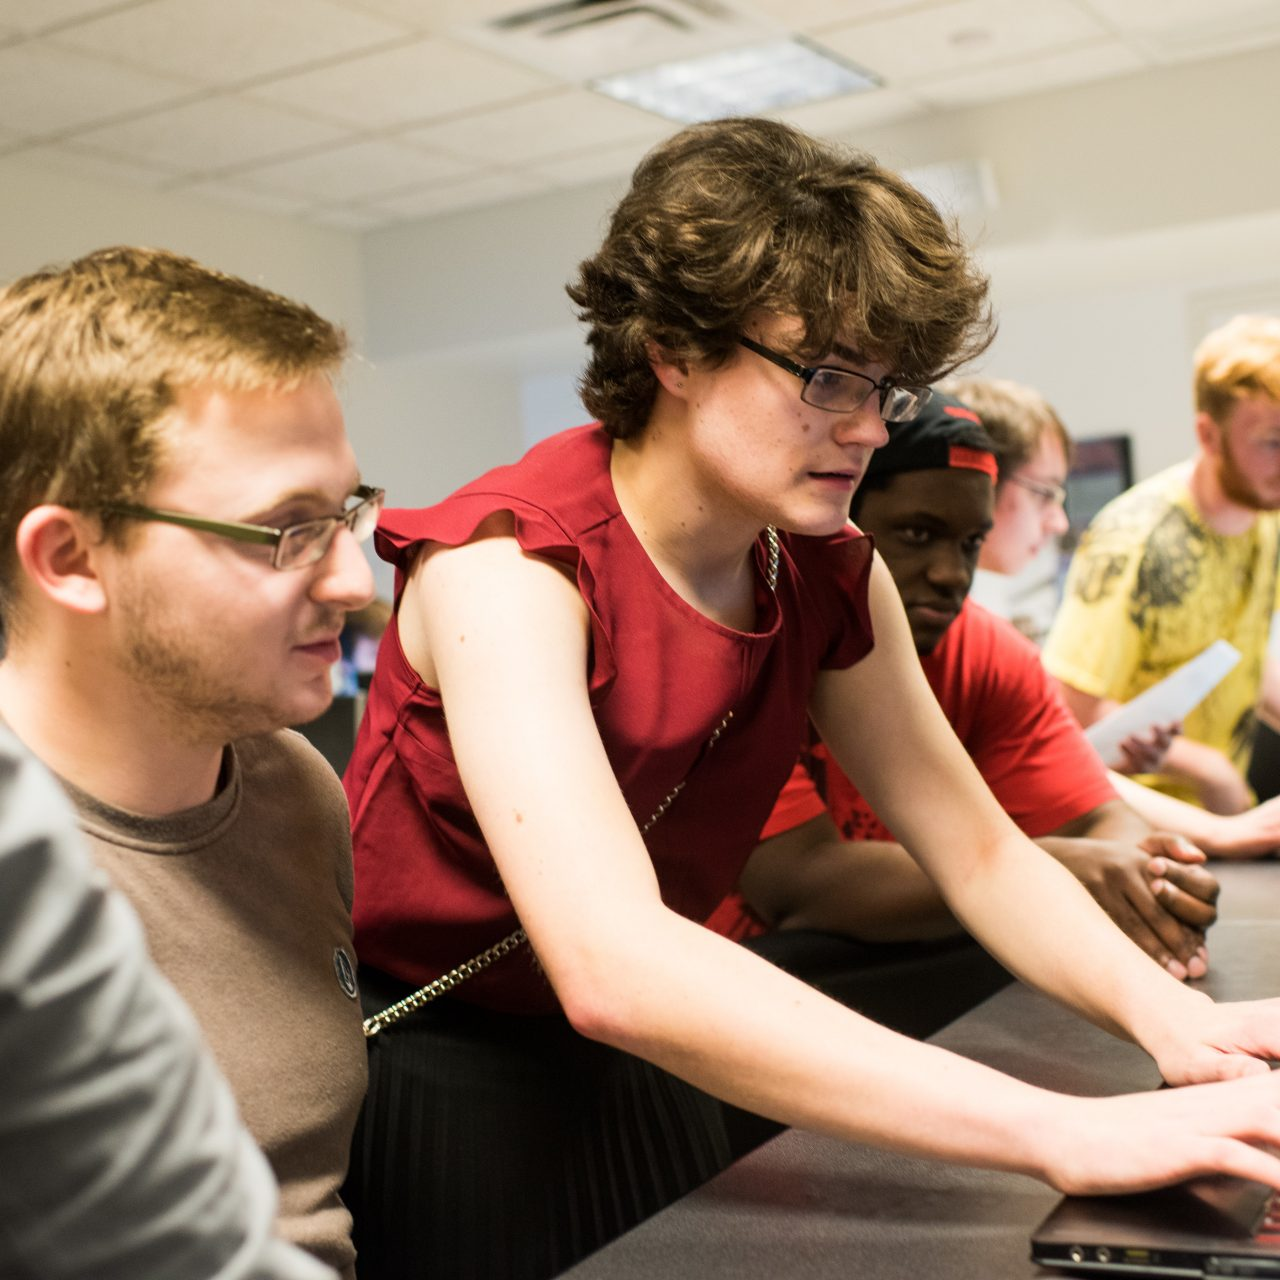 Students working on computers together